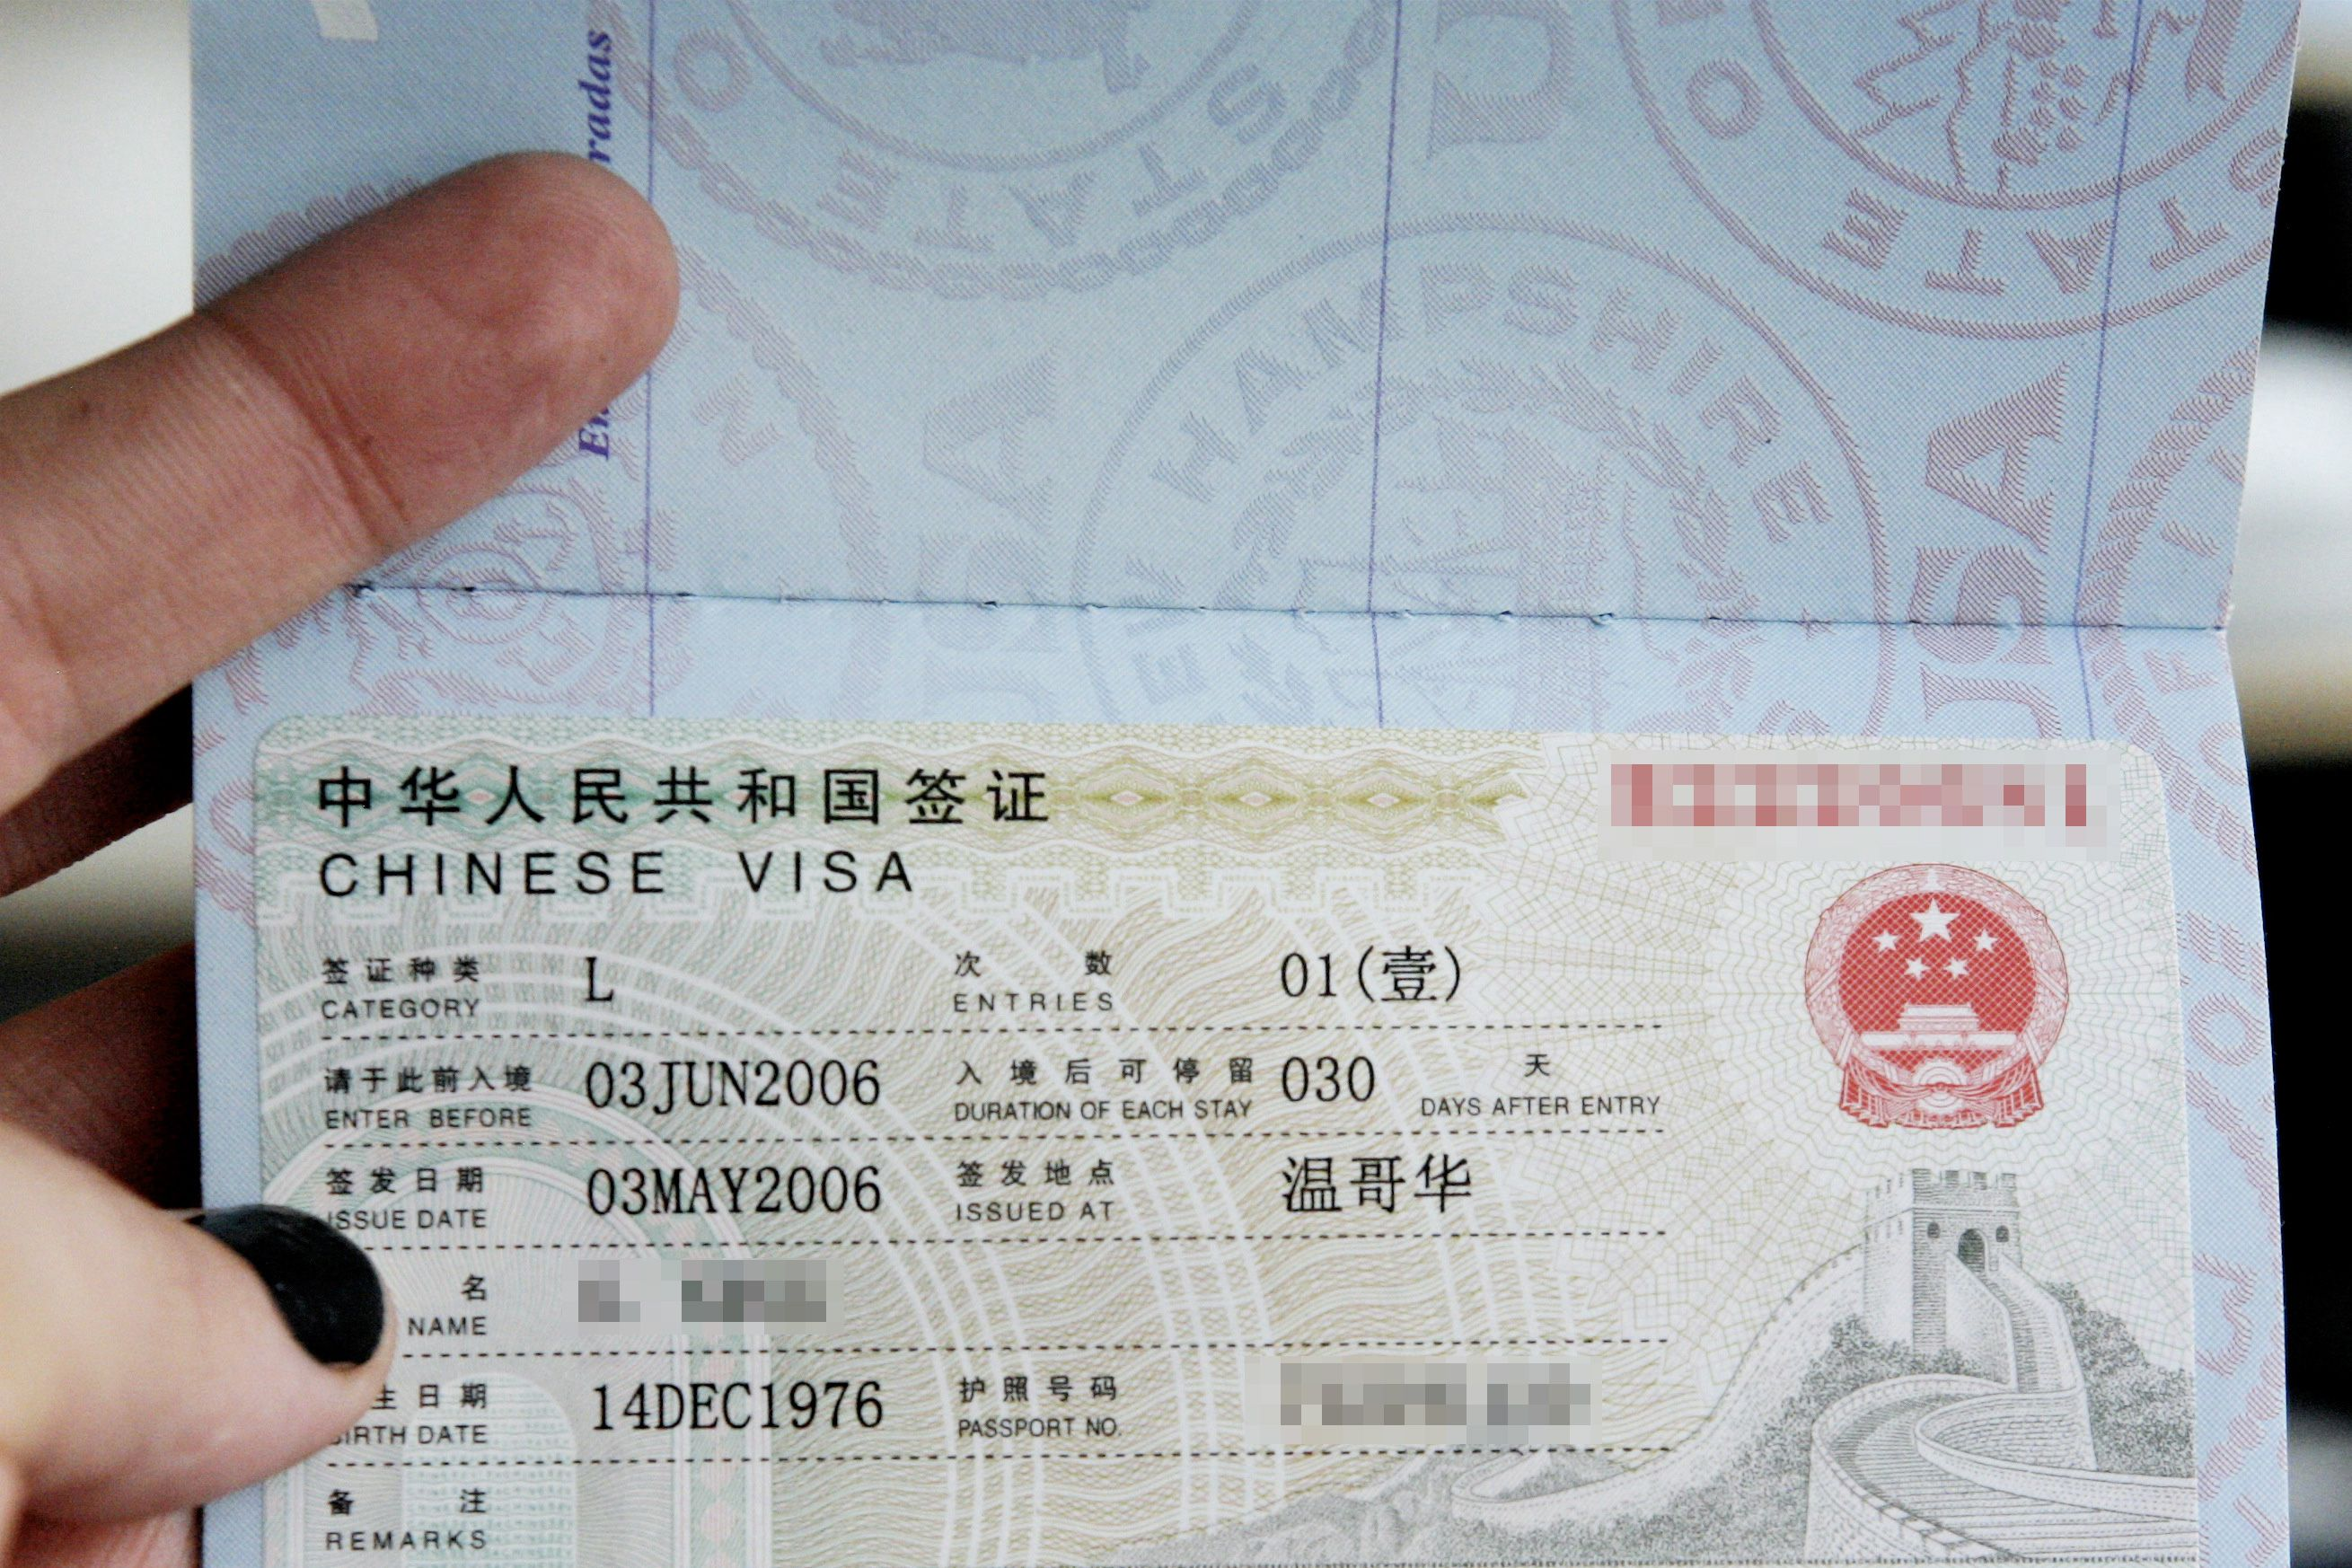 Passport and visa information how to get your passport and visa ready for travel to mainland china falaconquin